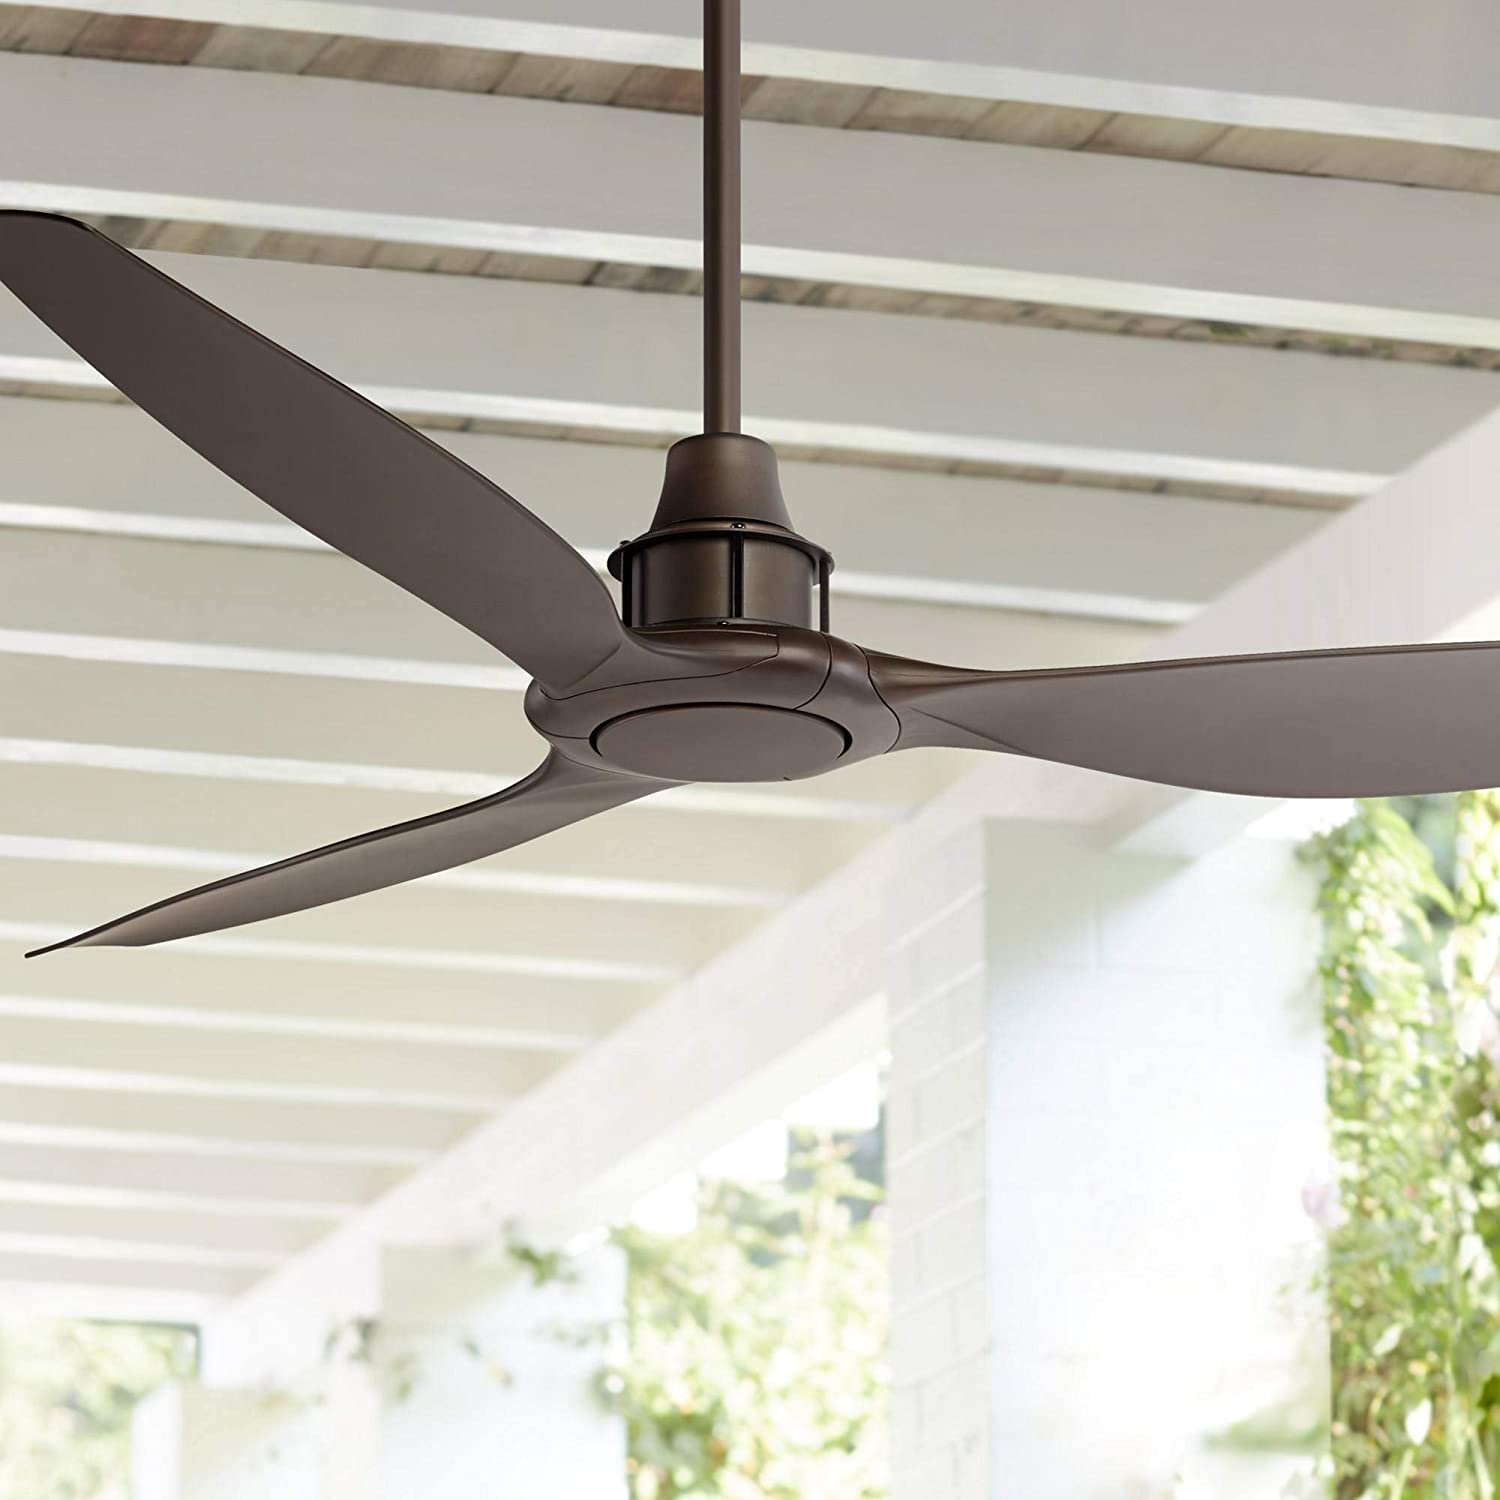 58 Interceptor Modern Outdoor Ceiling Fan With Remote Oil Rubbed Bronze Brown Damp Rated For Patio Porch Casa Vieja Amazon Com